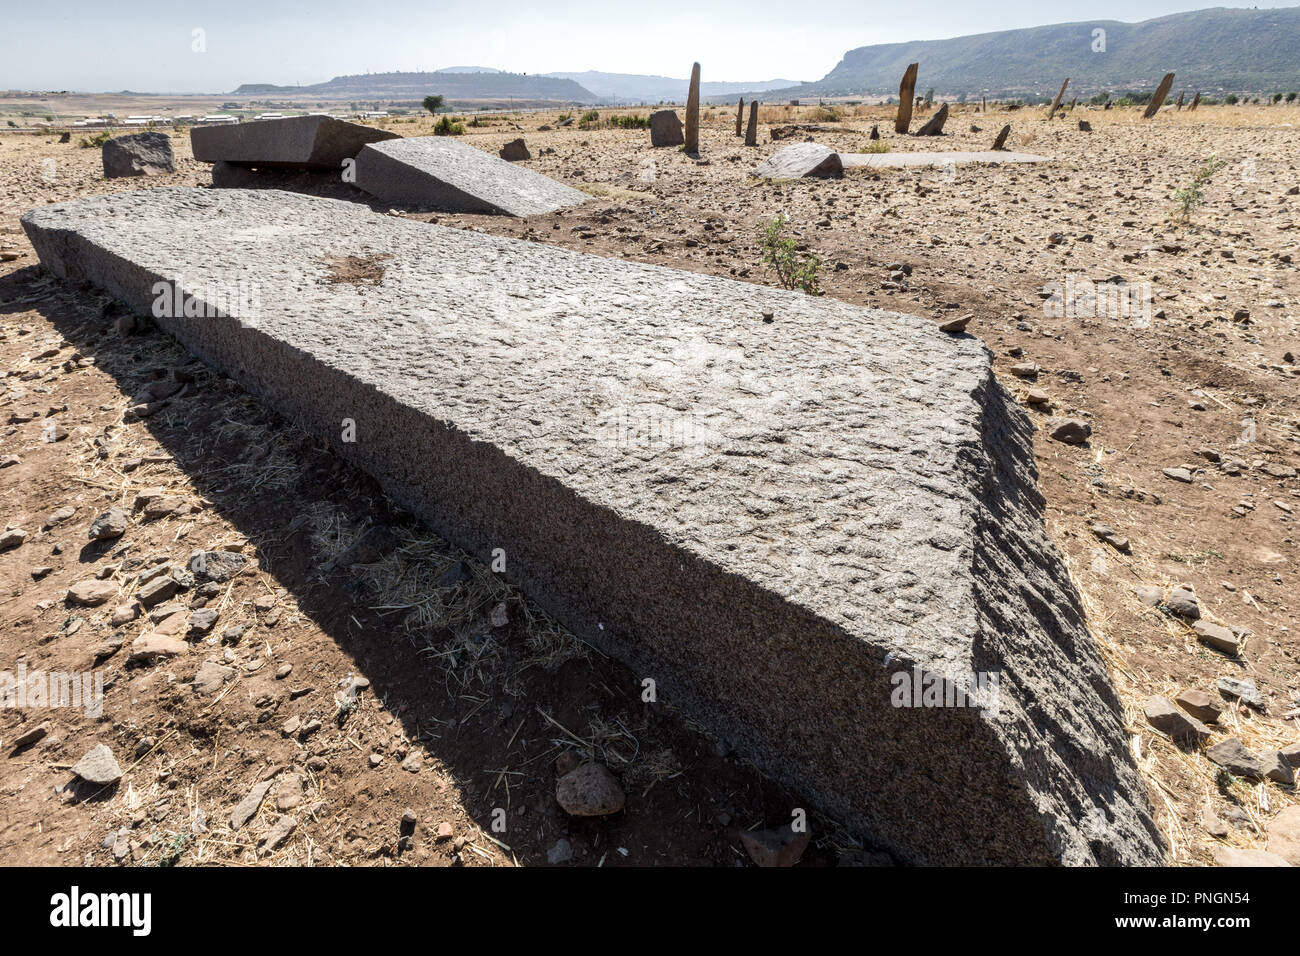 Gudit (Gudit (Judith, Esato, or Ga'wa) aka Yodit Stelae Field, Axum, Ethiopia. Thought to be resting place of lower ranked officials or others - Stock Image